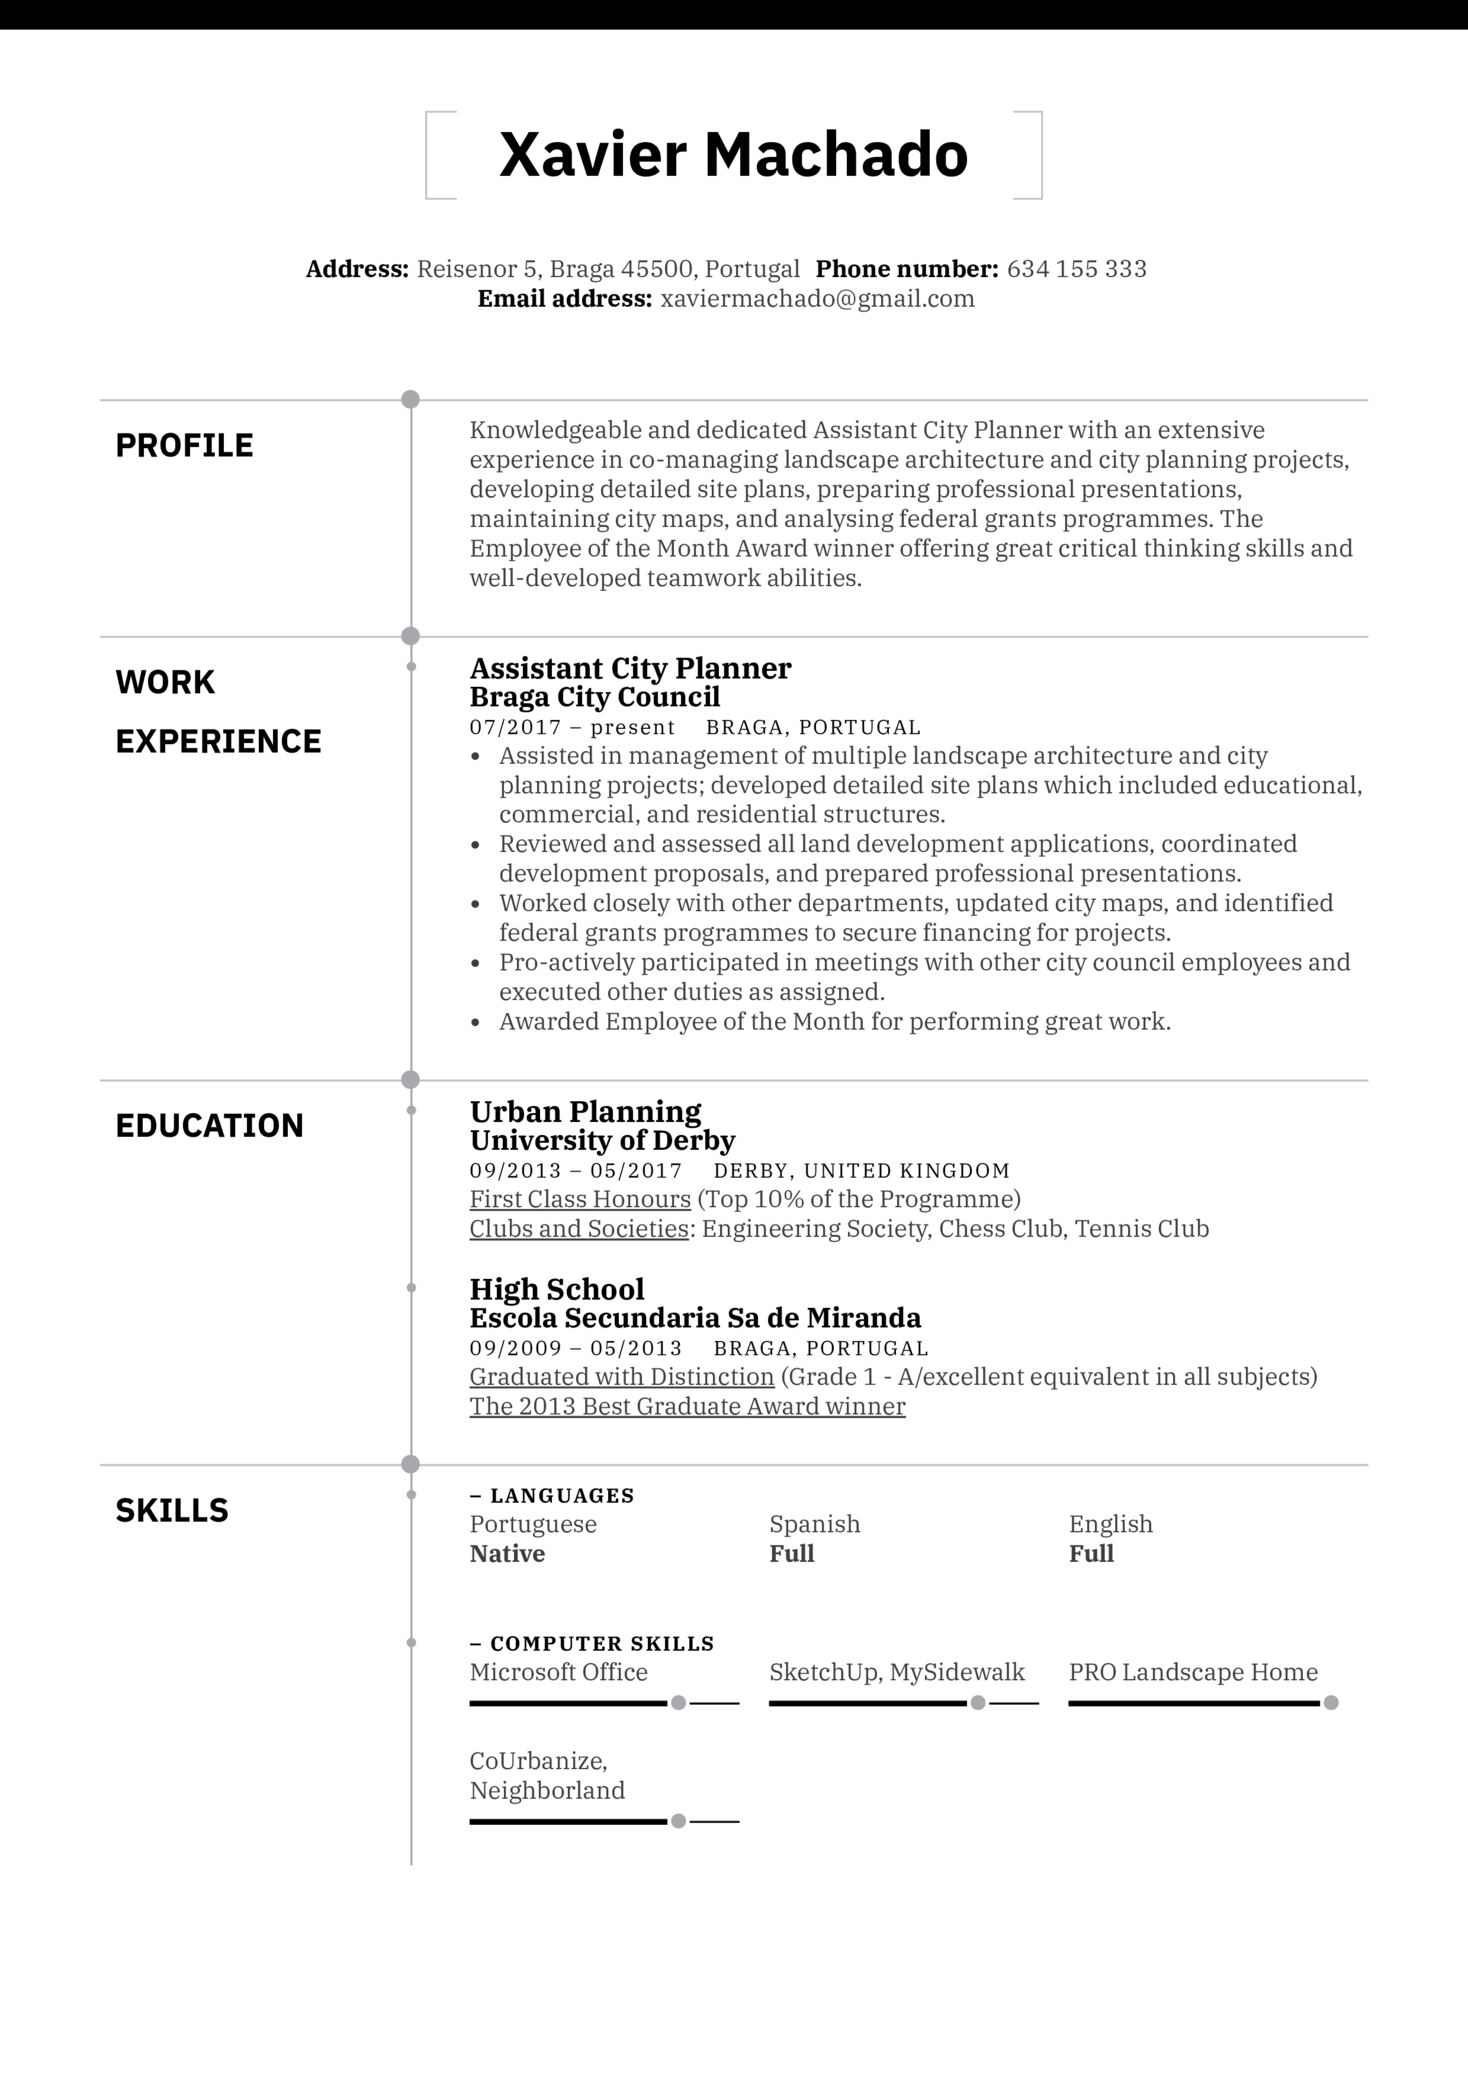 Assistant City Planner Resume Example (parte 1)